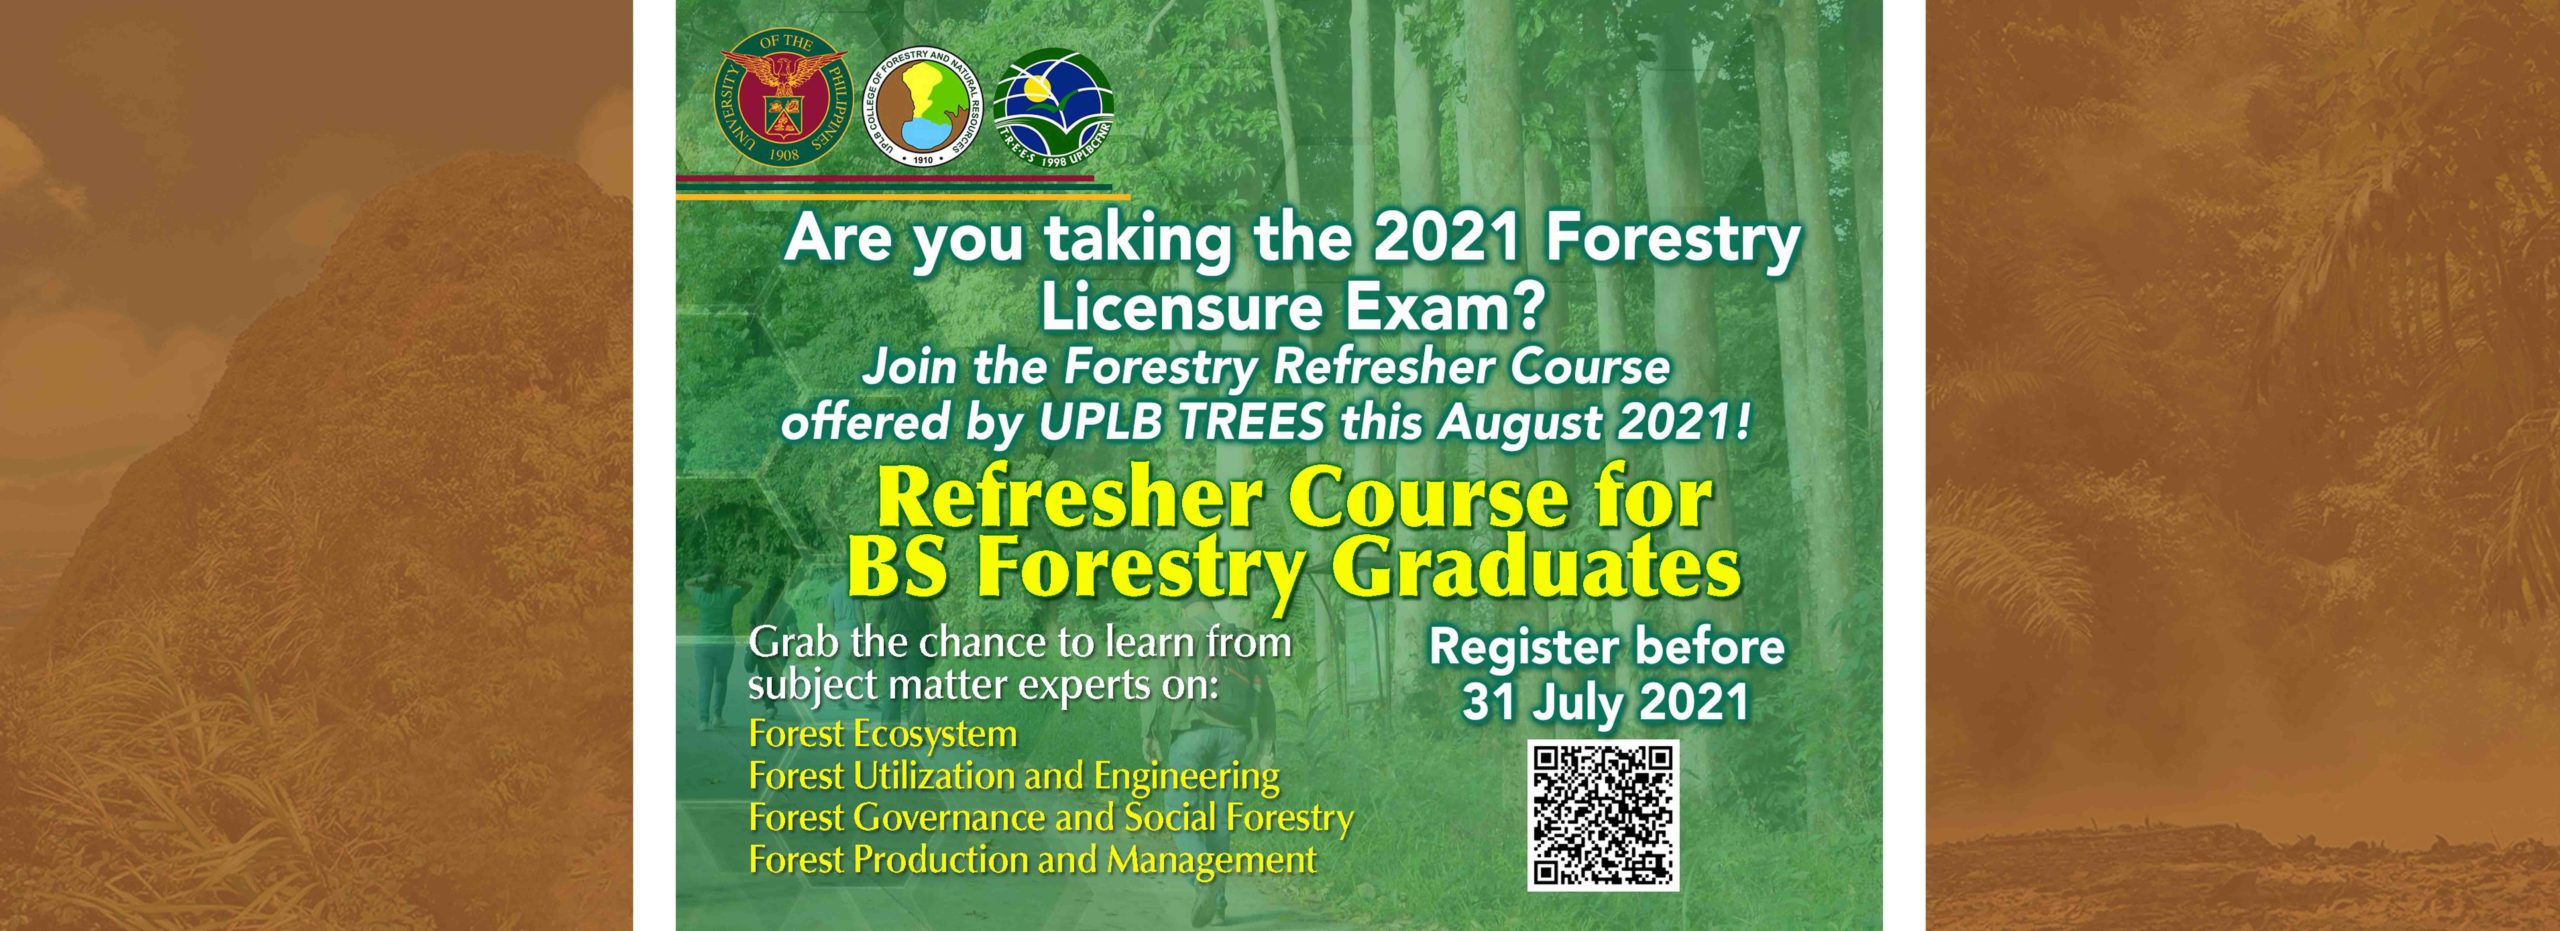 Refresher Course for BS Forestry Graduates